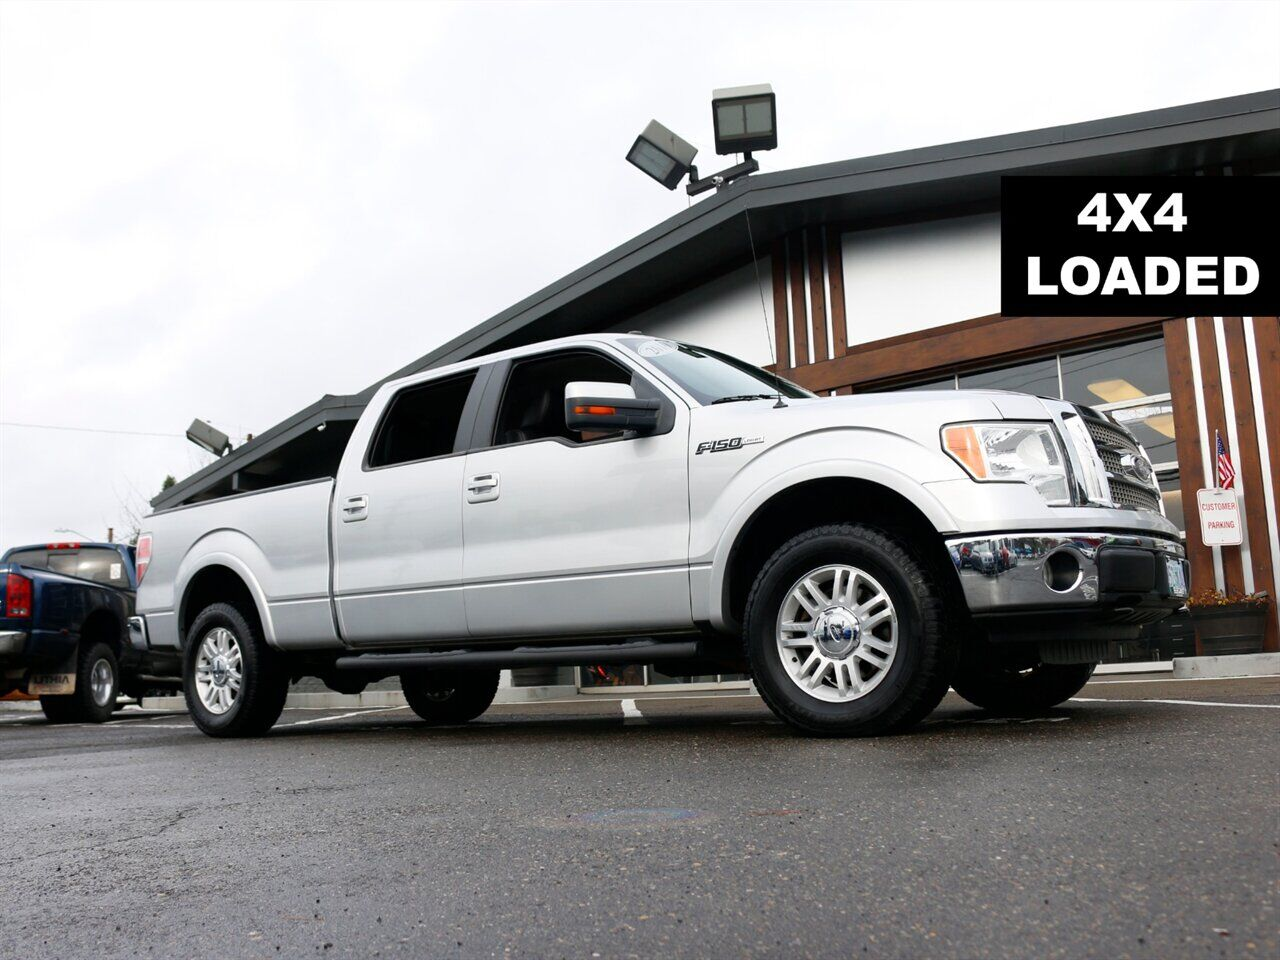 2010 Ford F-150 Lariat leather loaded 4x4 clean low miles Beaverton OR